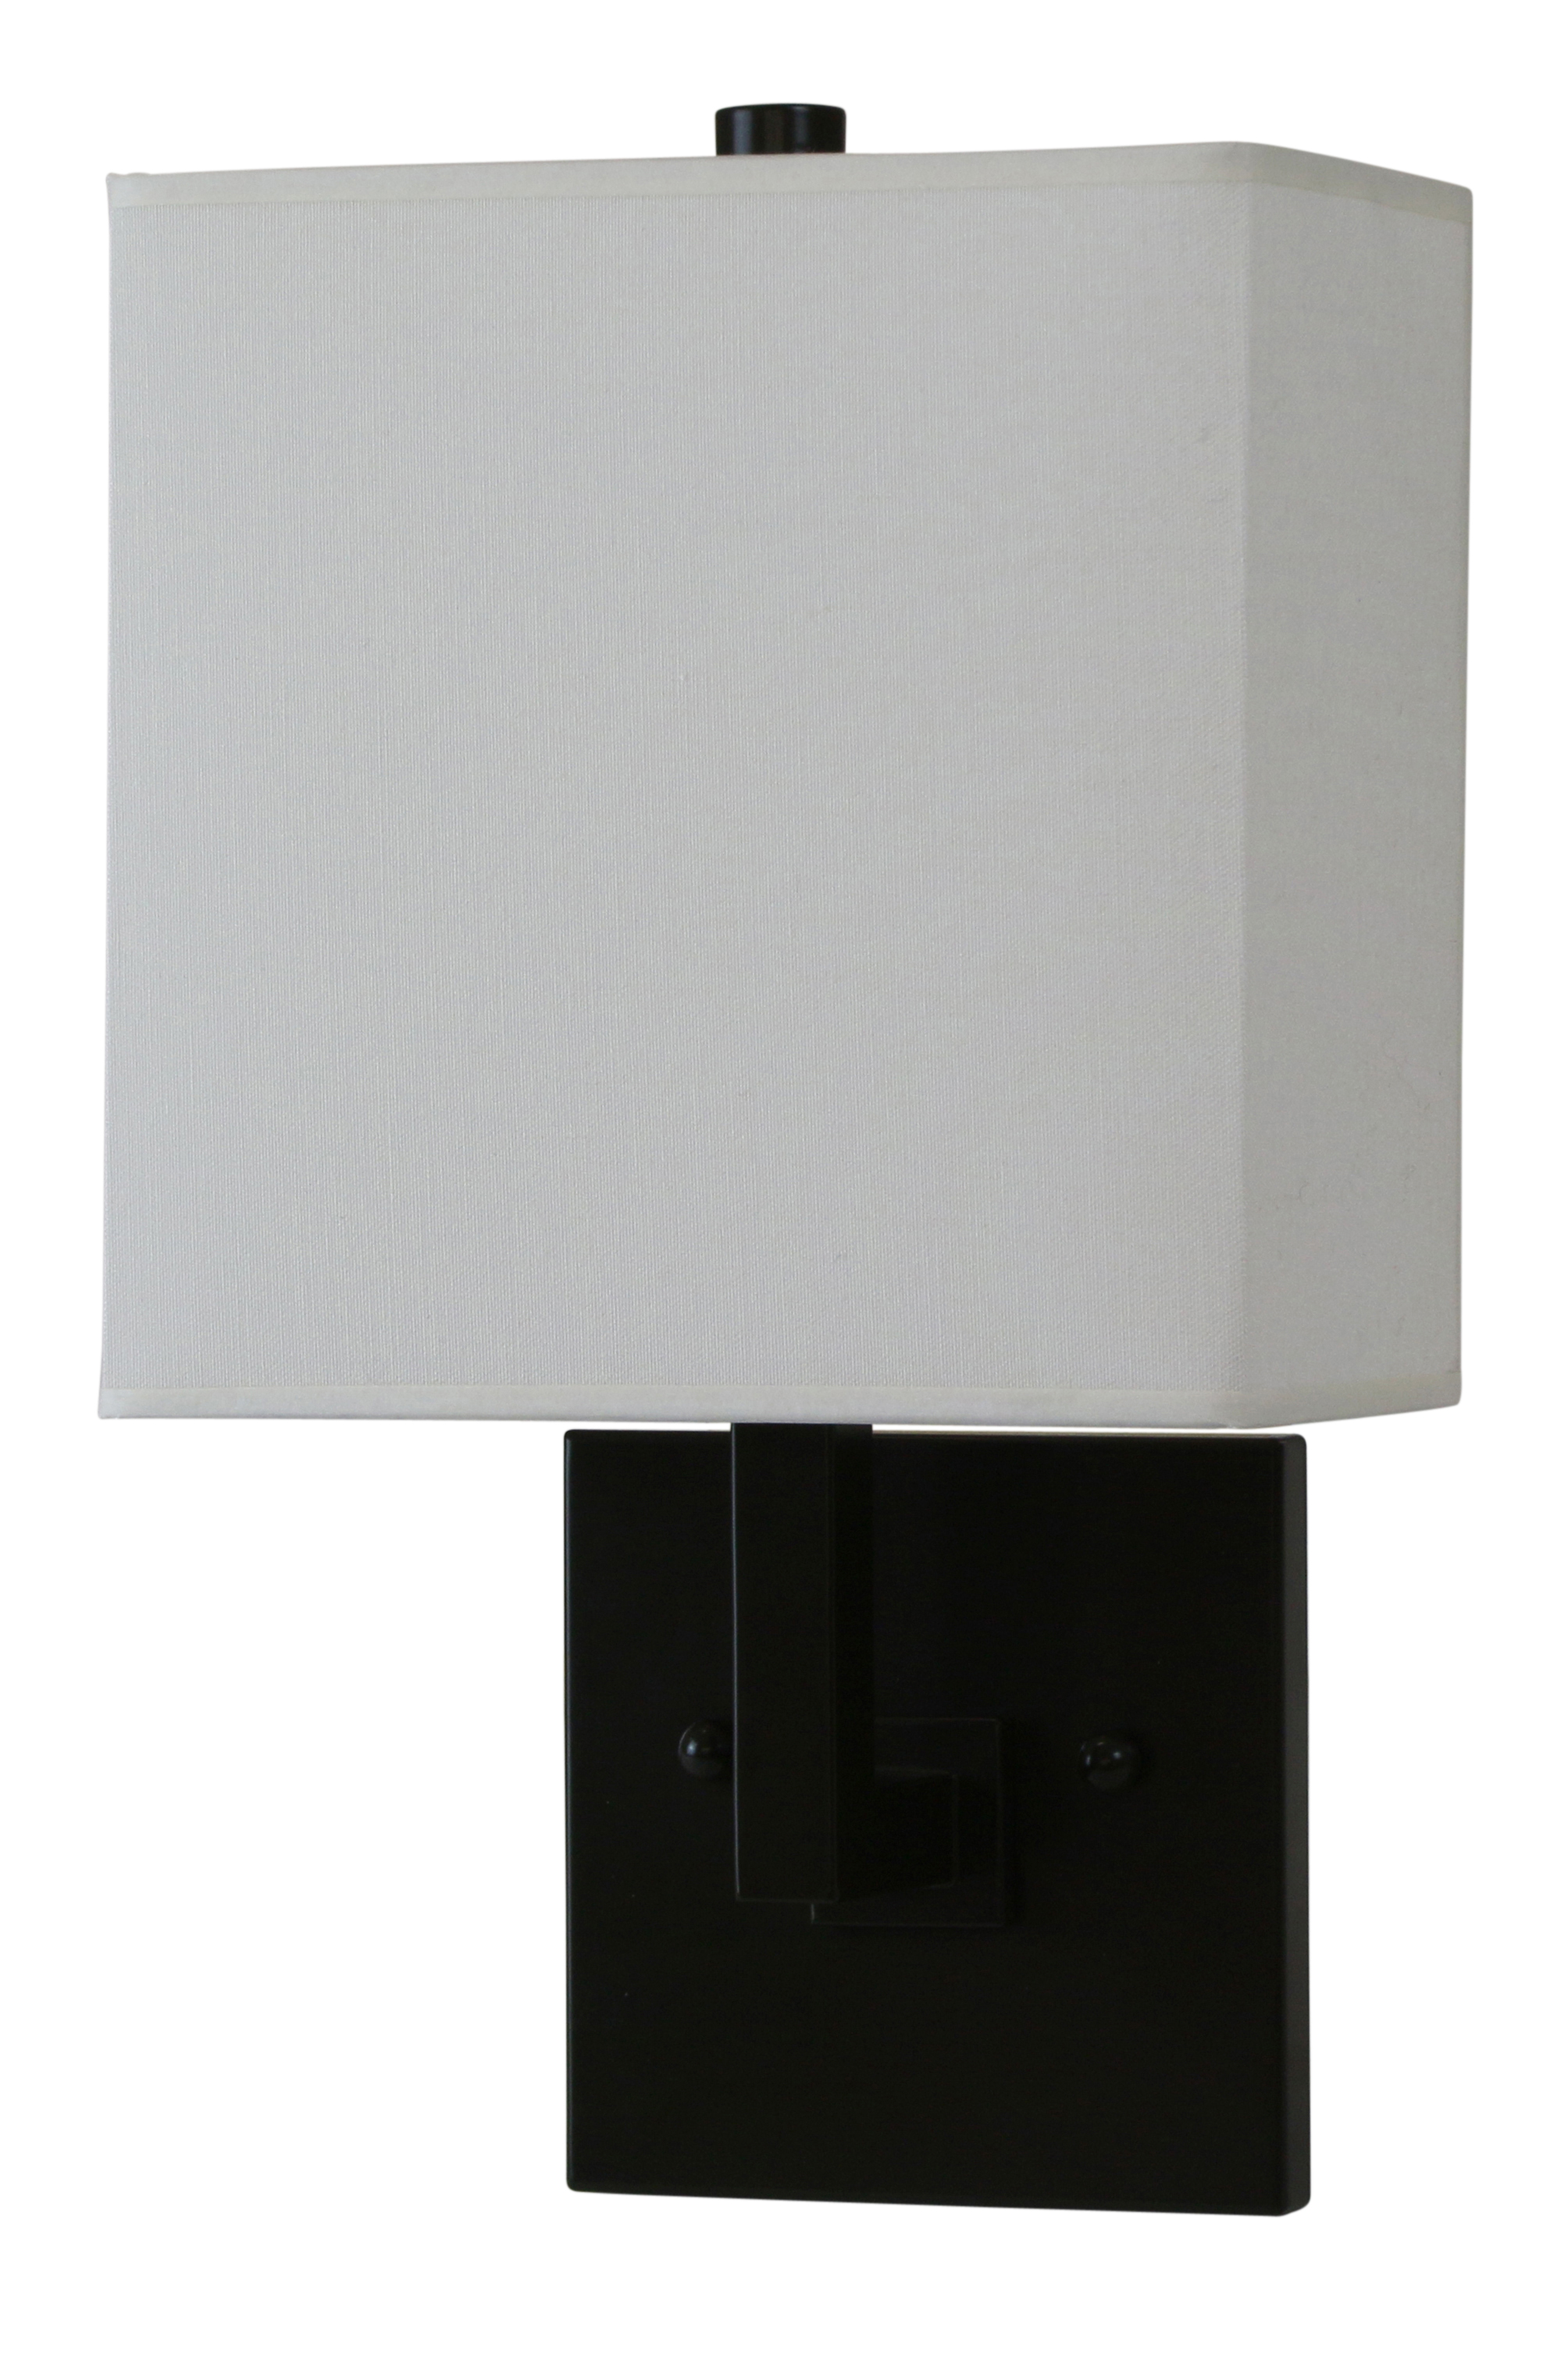 House Of Troy Wl631-Abz 1 Light Direct Wire Ada Wall Sconce In ...